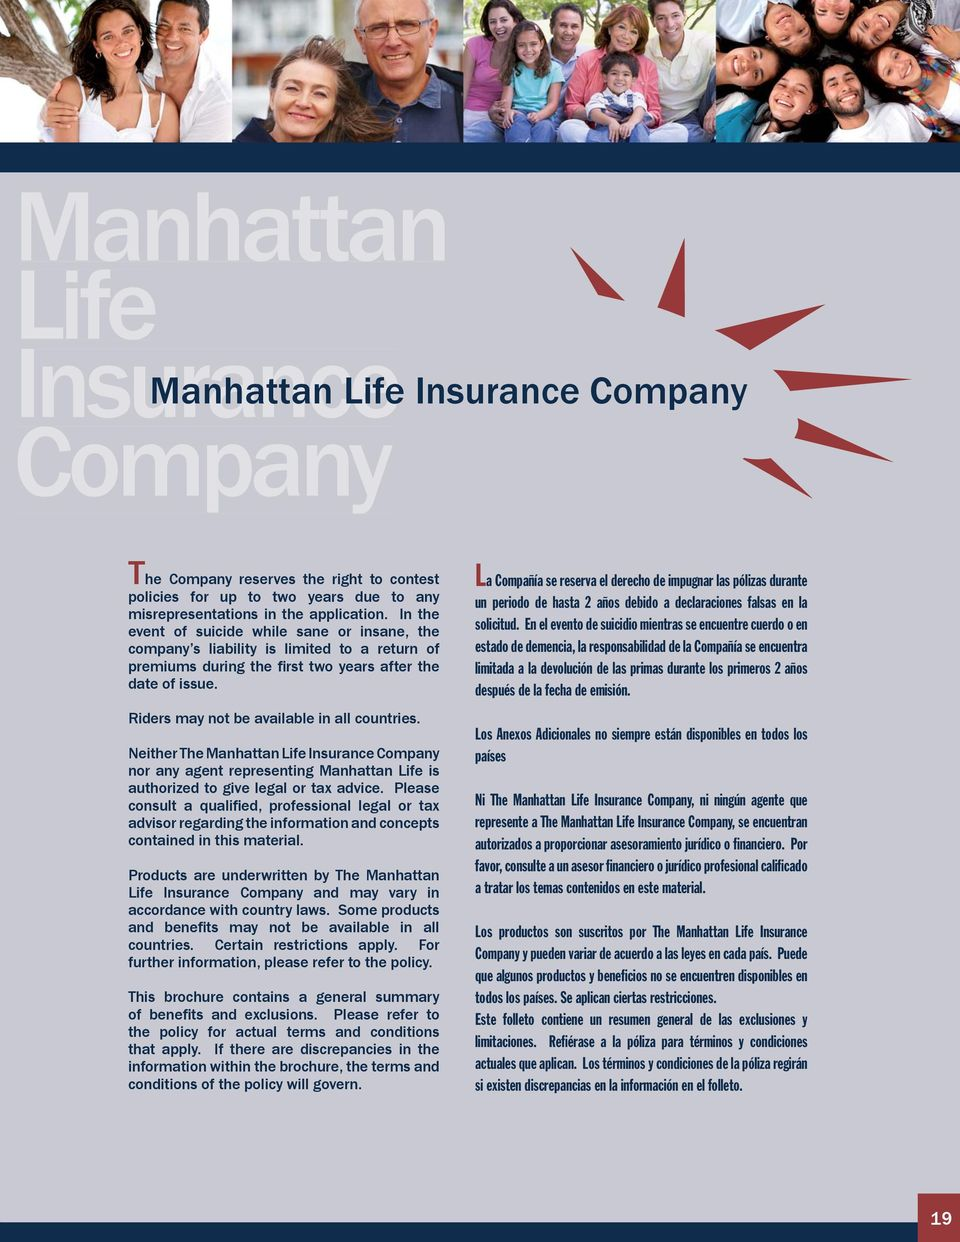 Riders may not be available in all countries. Neither The Manhattan Life Insurance Company nor any agent representing Manhattan Life is authorized to give legal or tax advice.